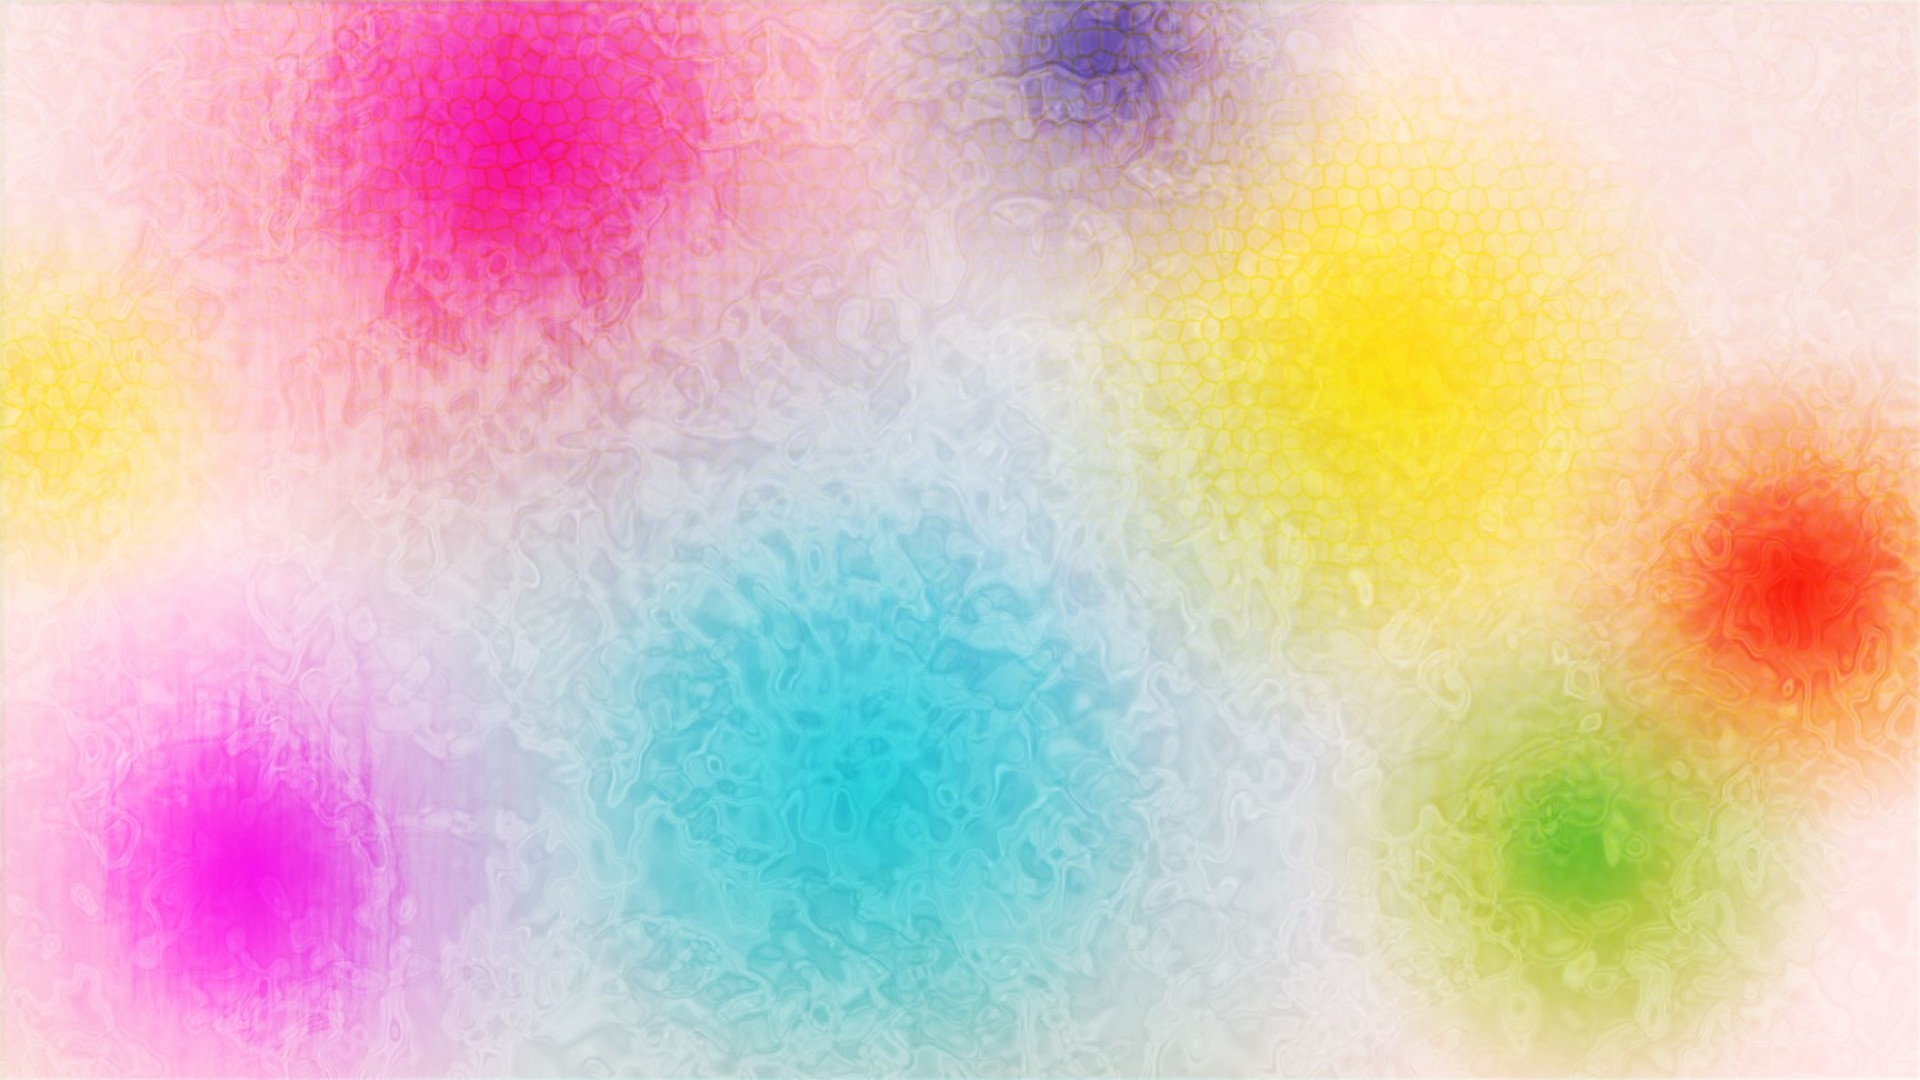 Sweet Abstract Backgrounds Tumblr Wallpaper